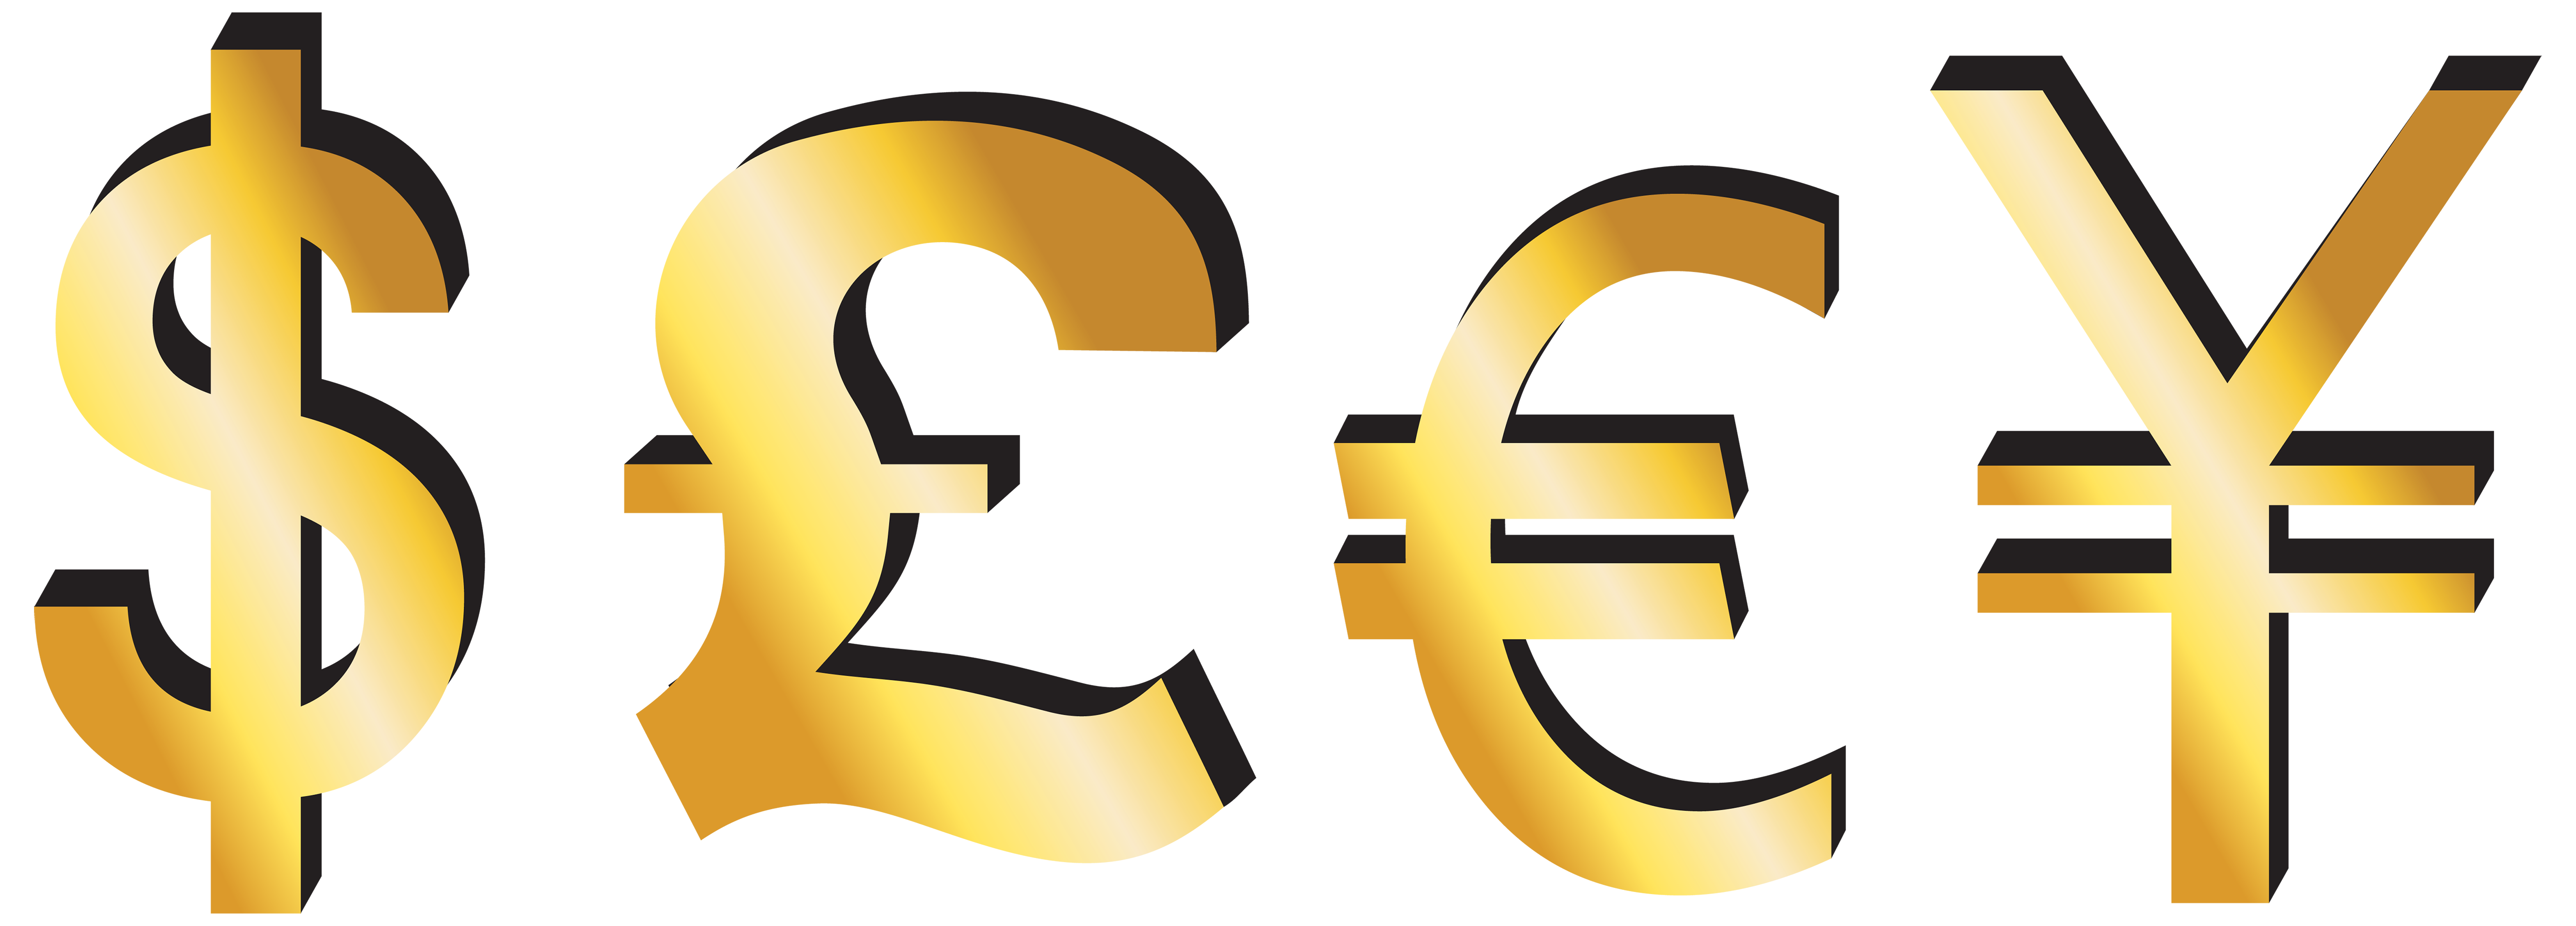 Money Png | Free download on ClipArtMag